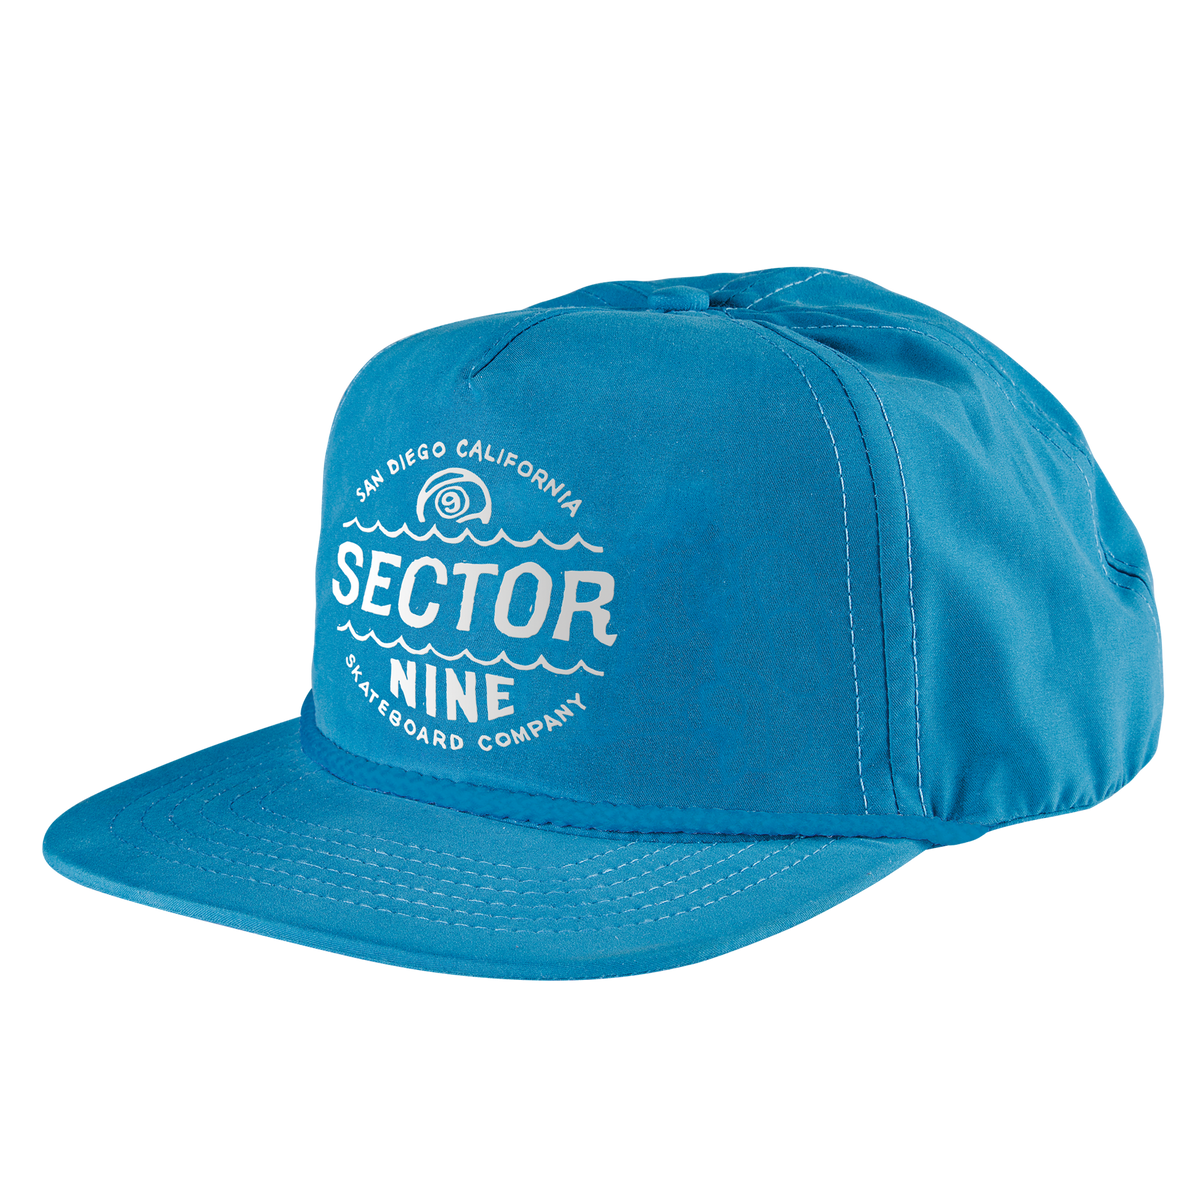 sector-nine-blue-hat